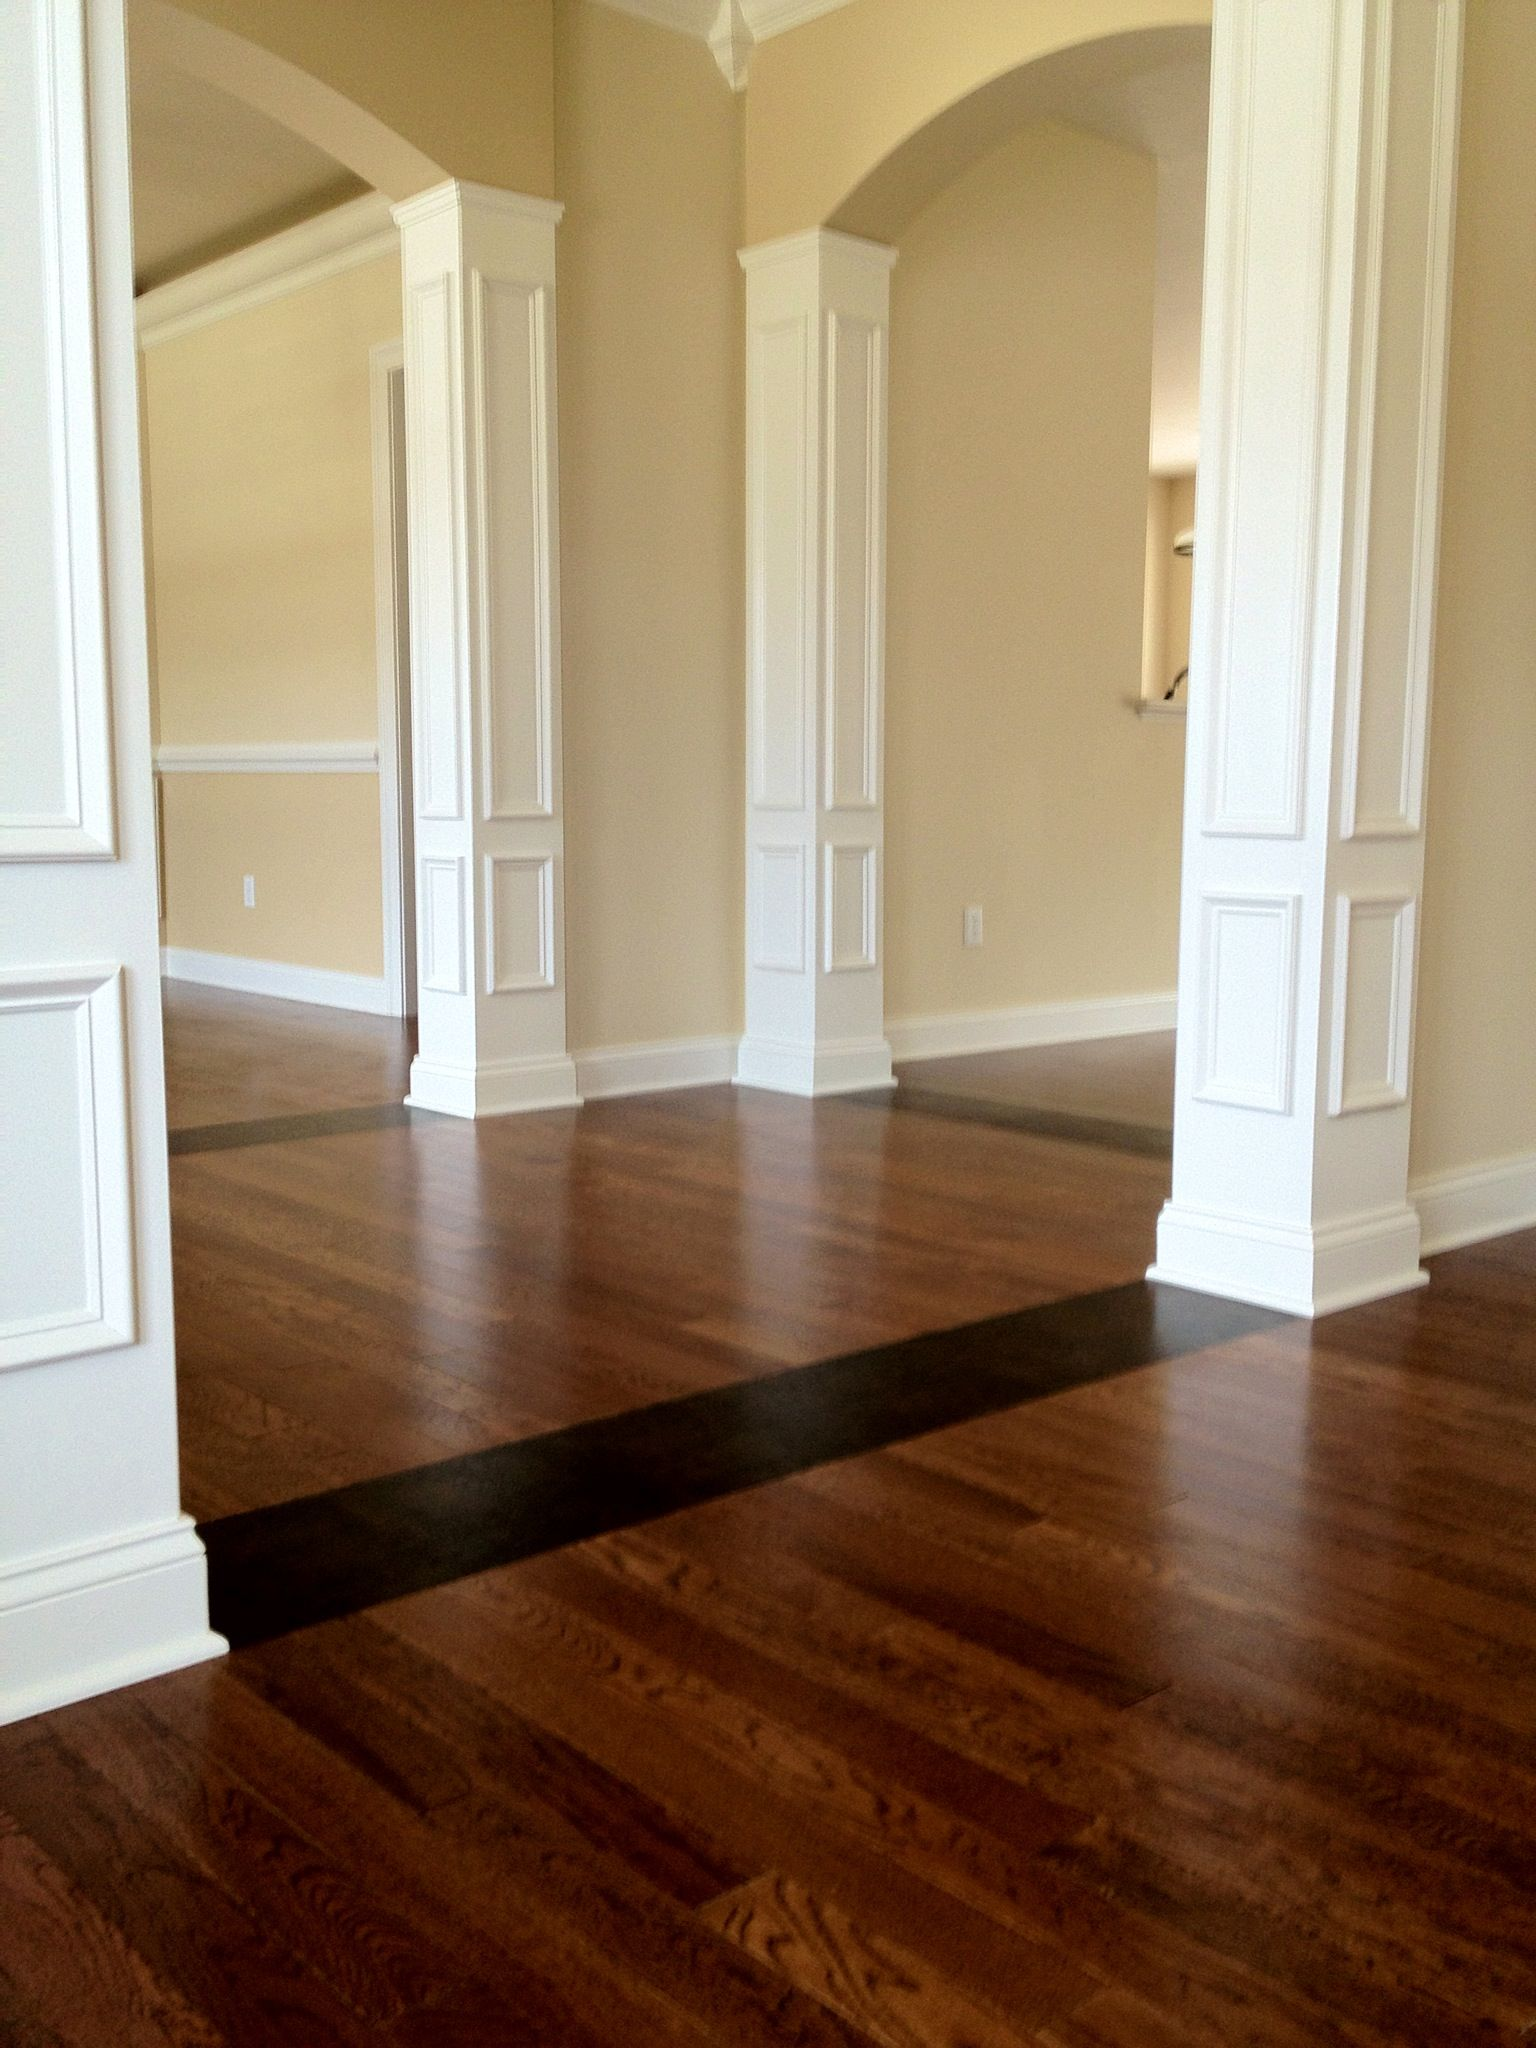 General Beautiful Hardwood Floors With Our Signature